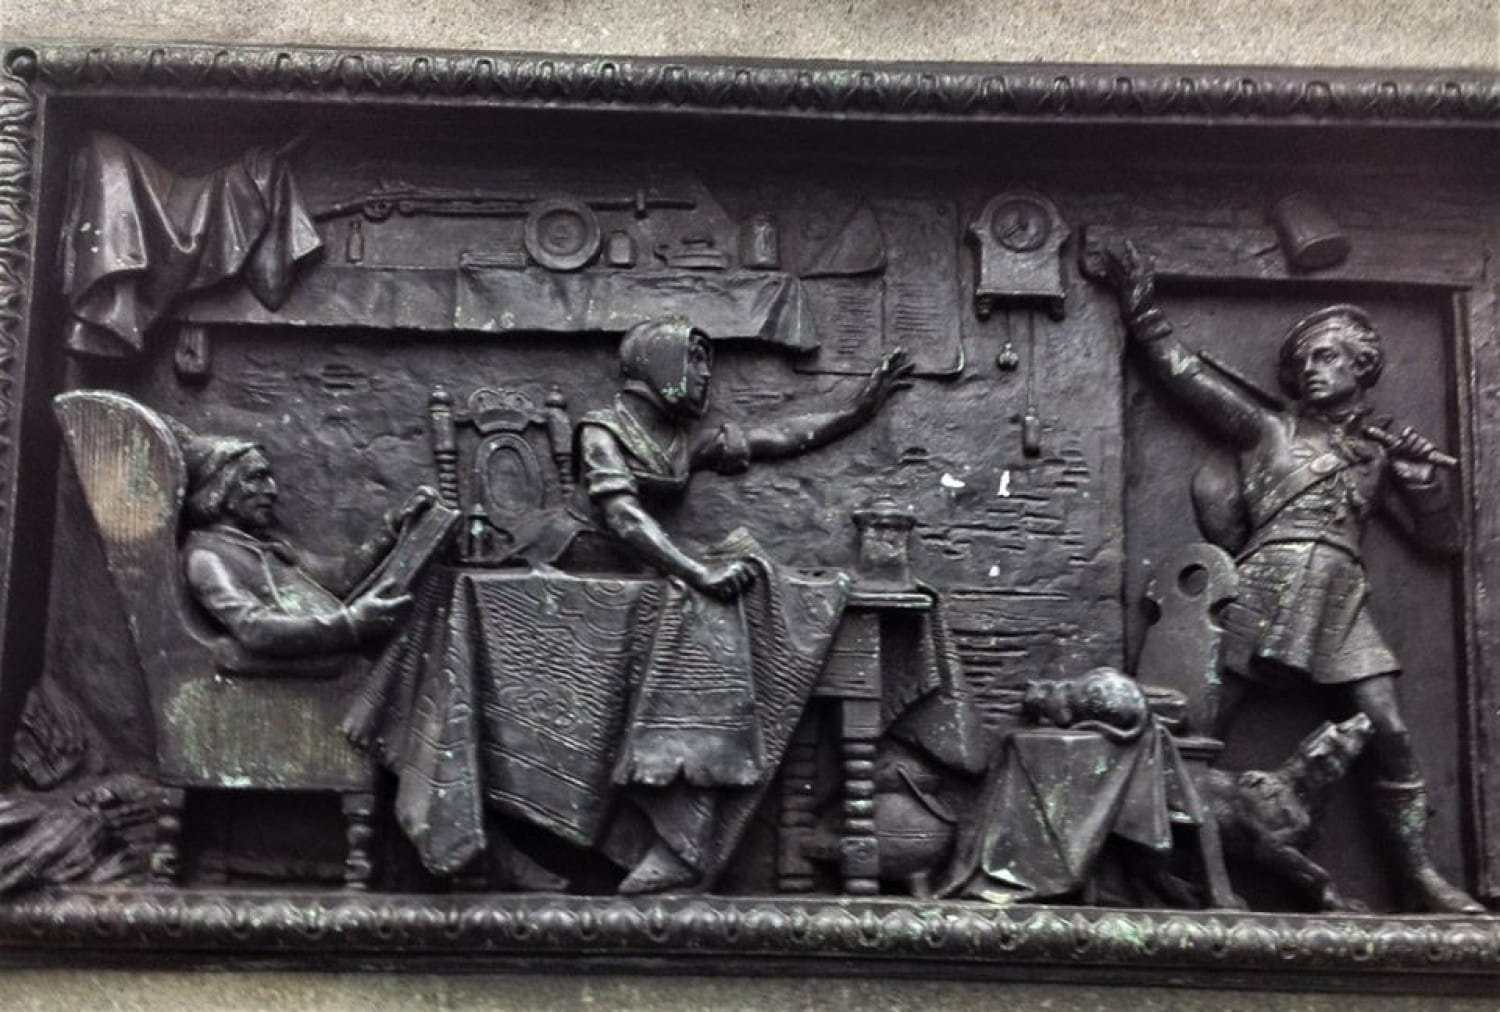 The Soldier's Return - one of the panels on the plinth of the Duke of Wellington statue